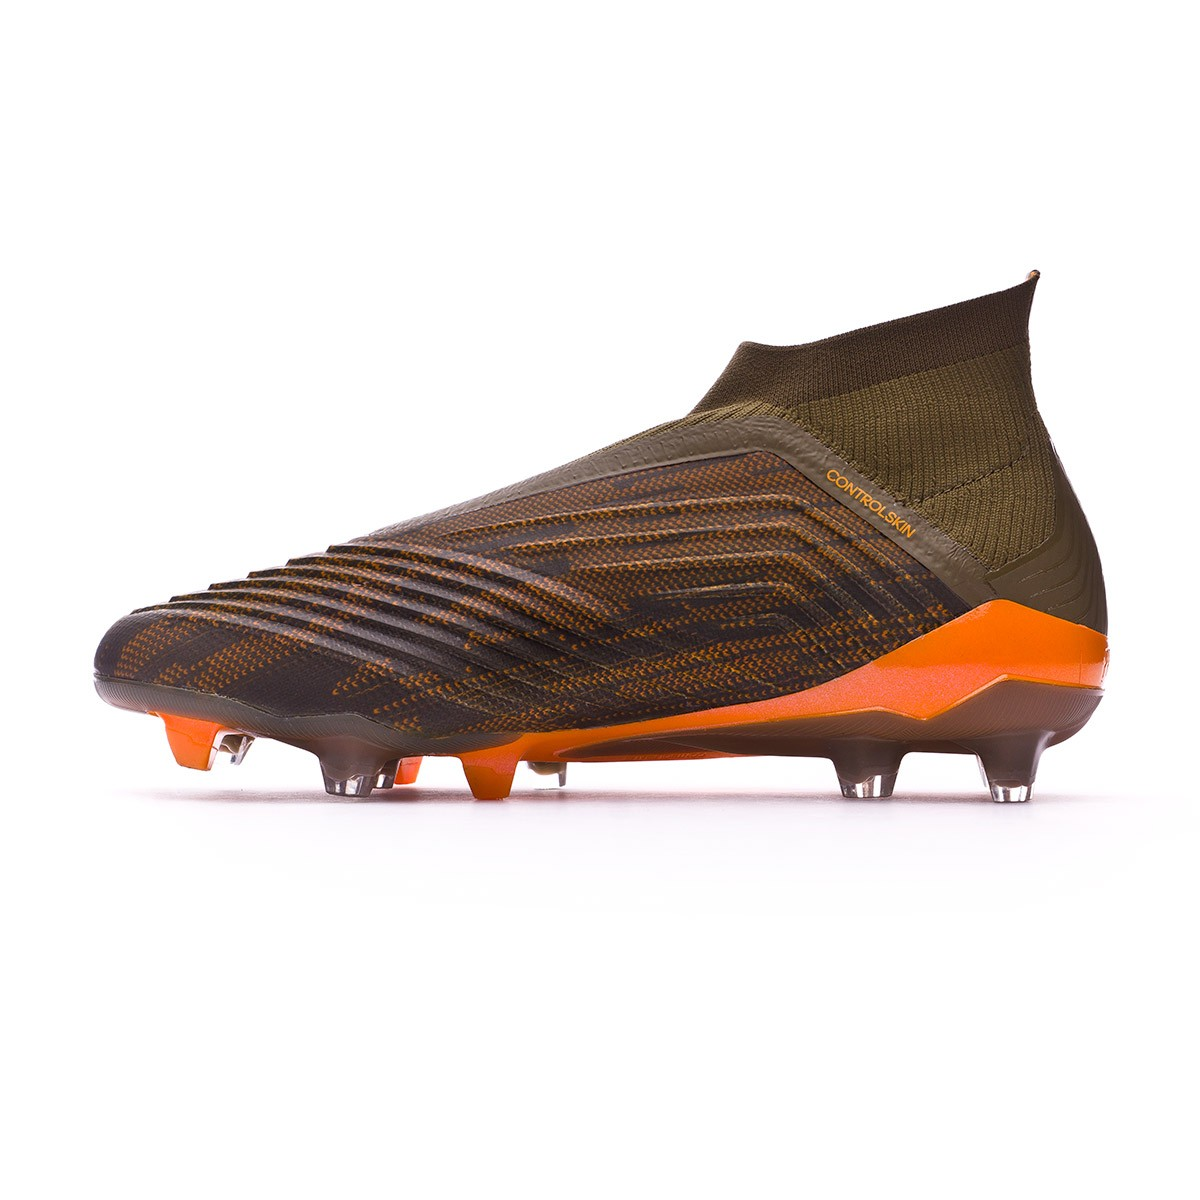 Boot adidas Predator 18+ FG Trace olive-Core black-Bright orange - Tienda  de fútbol Fútbol Emotion 97760baf2